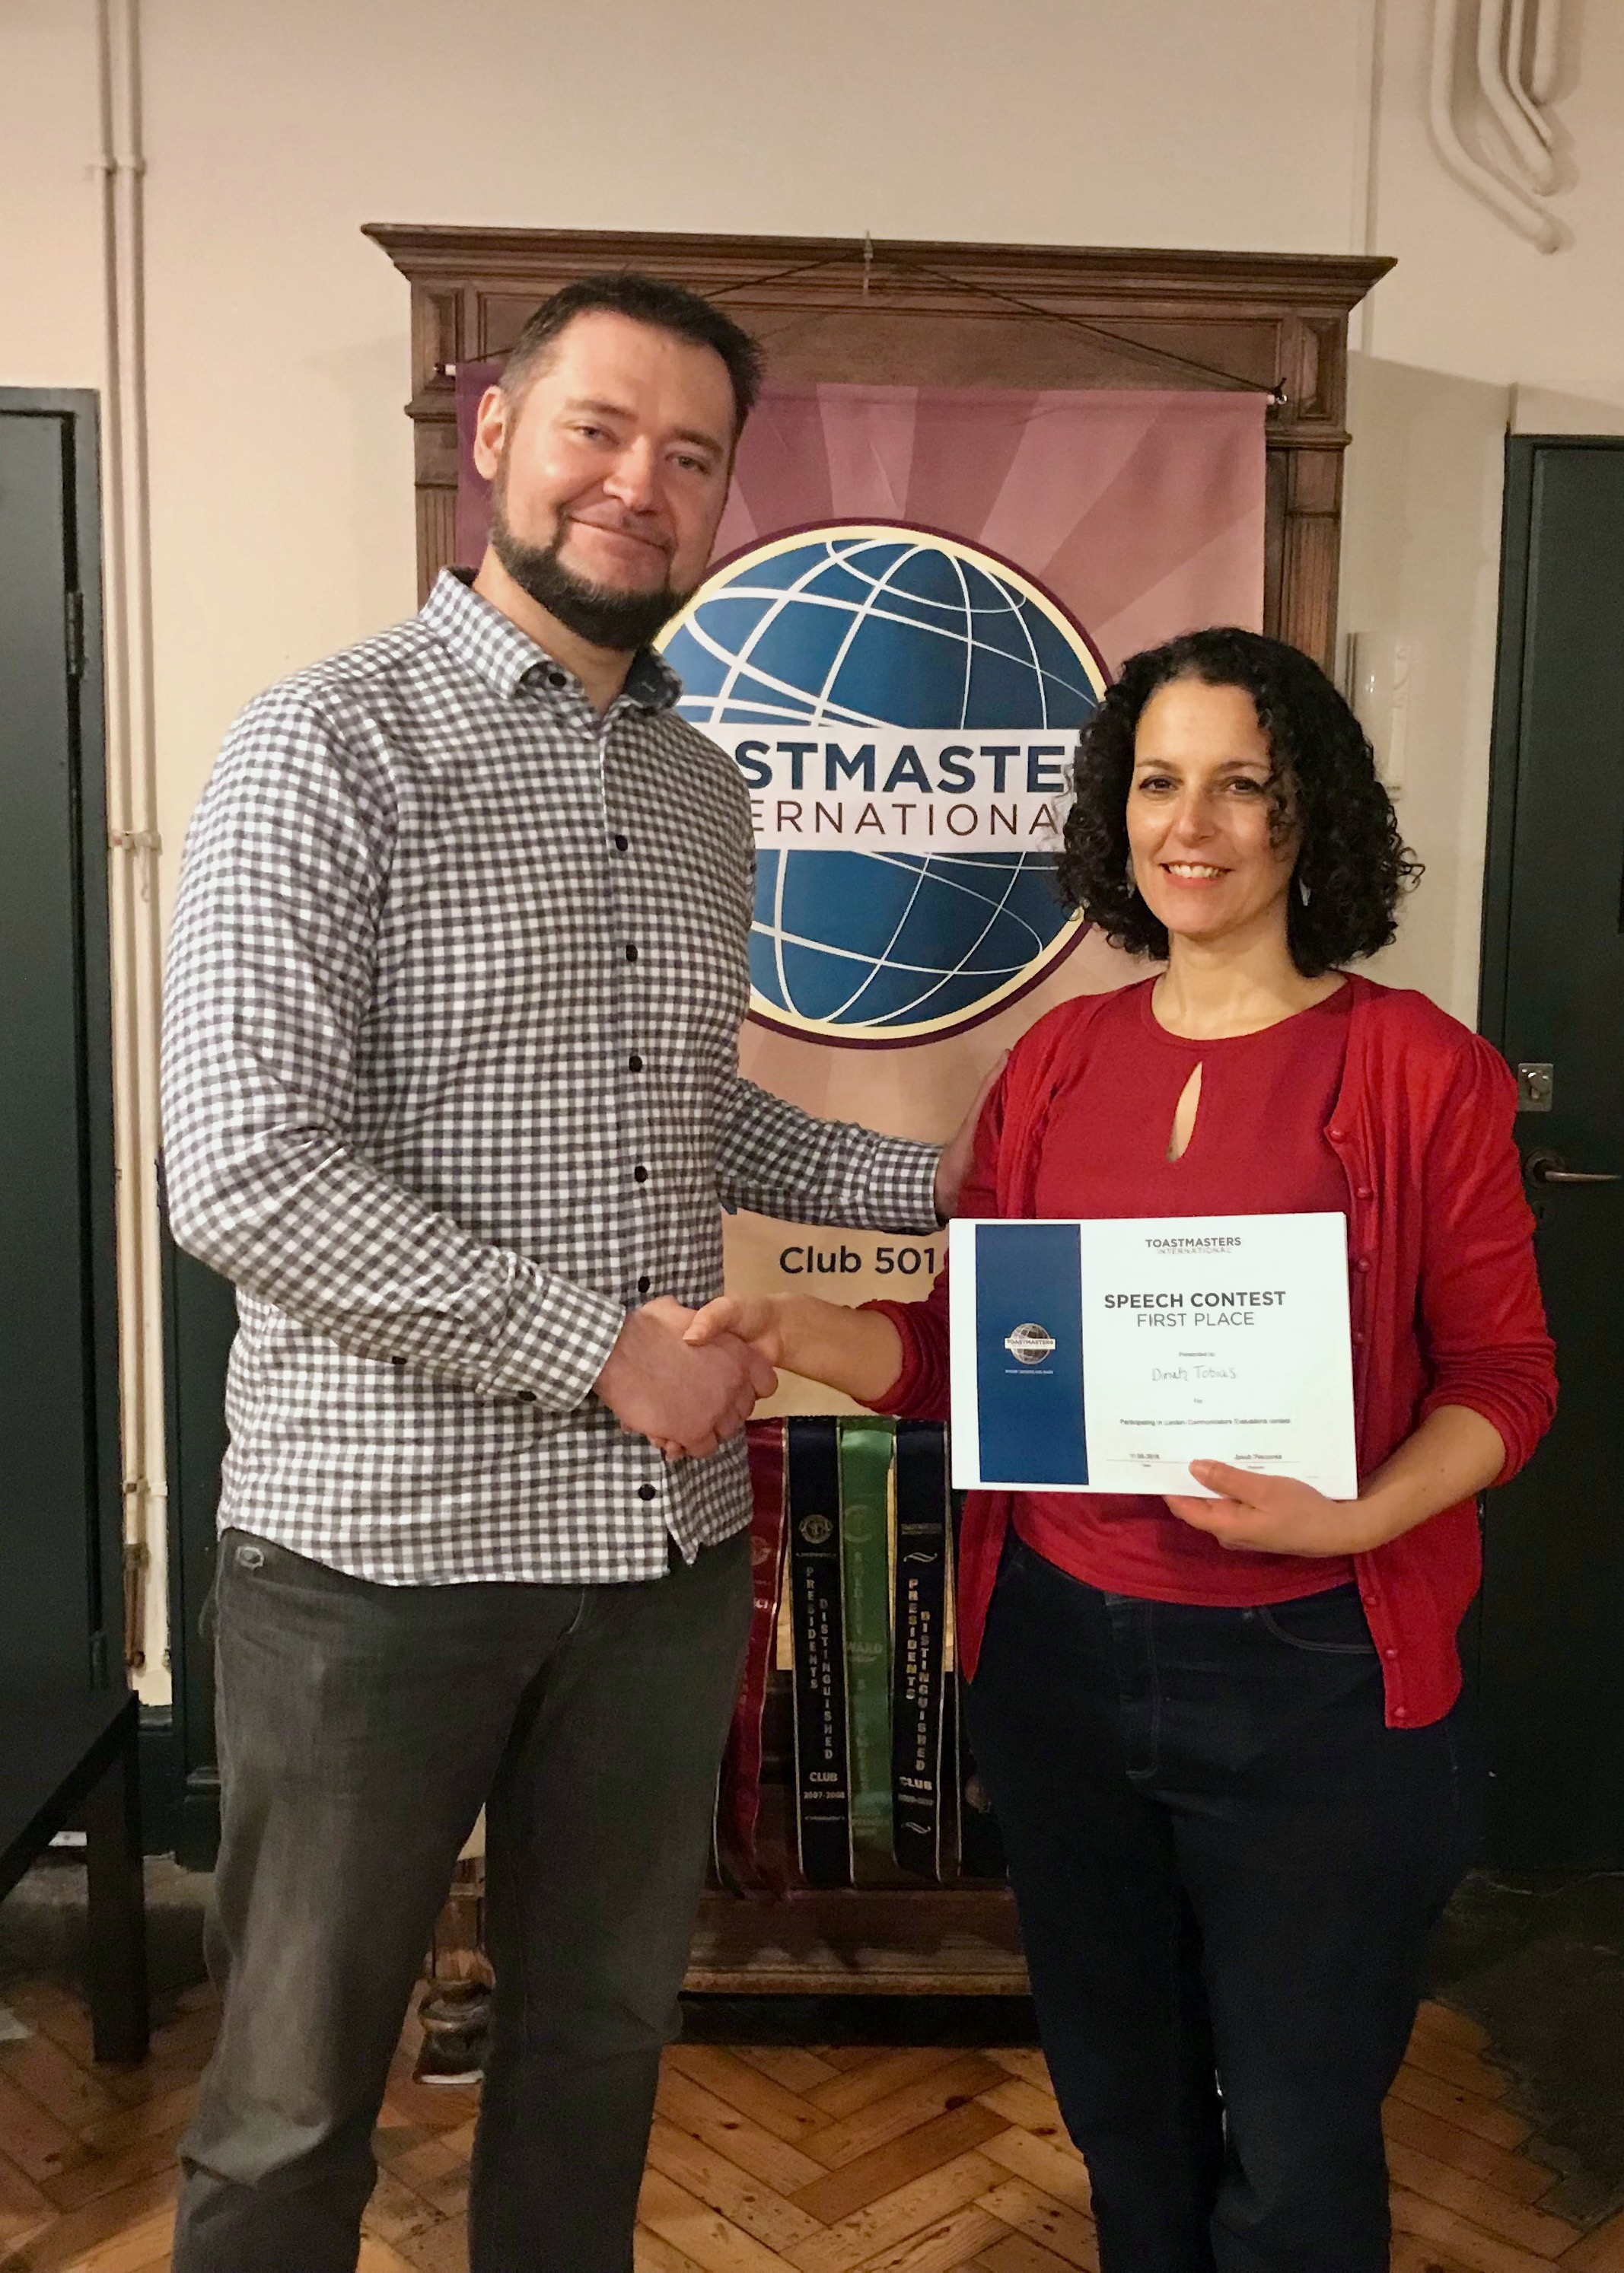 Jake presenting Dinah, our Club President and the evaluation contest winner, with the certificate.